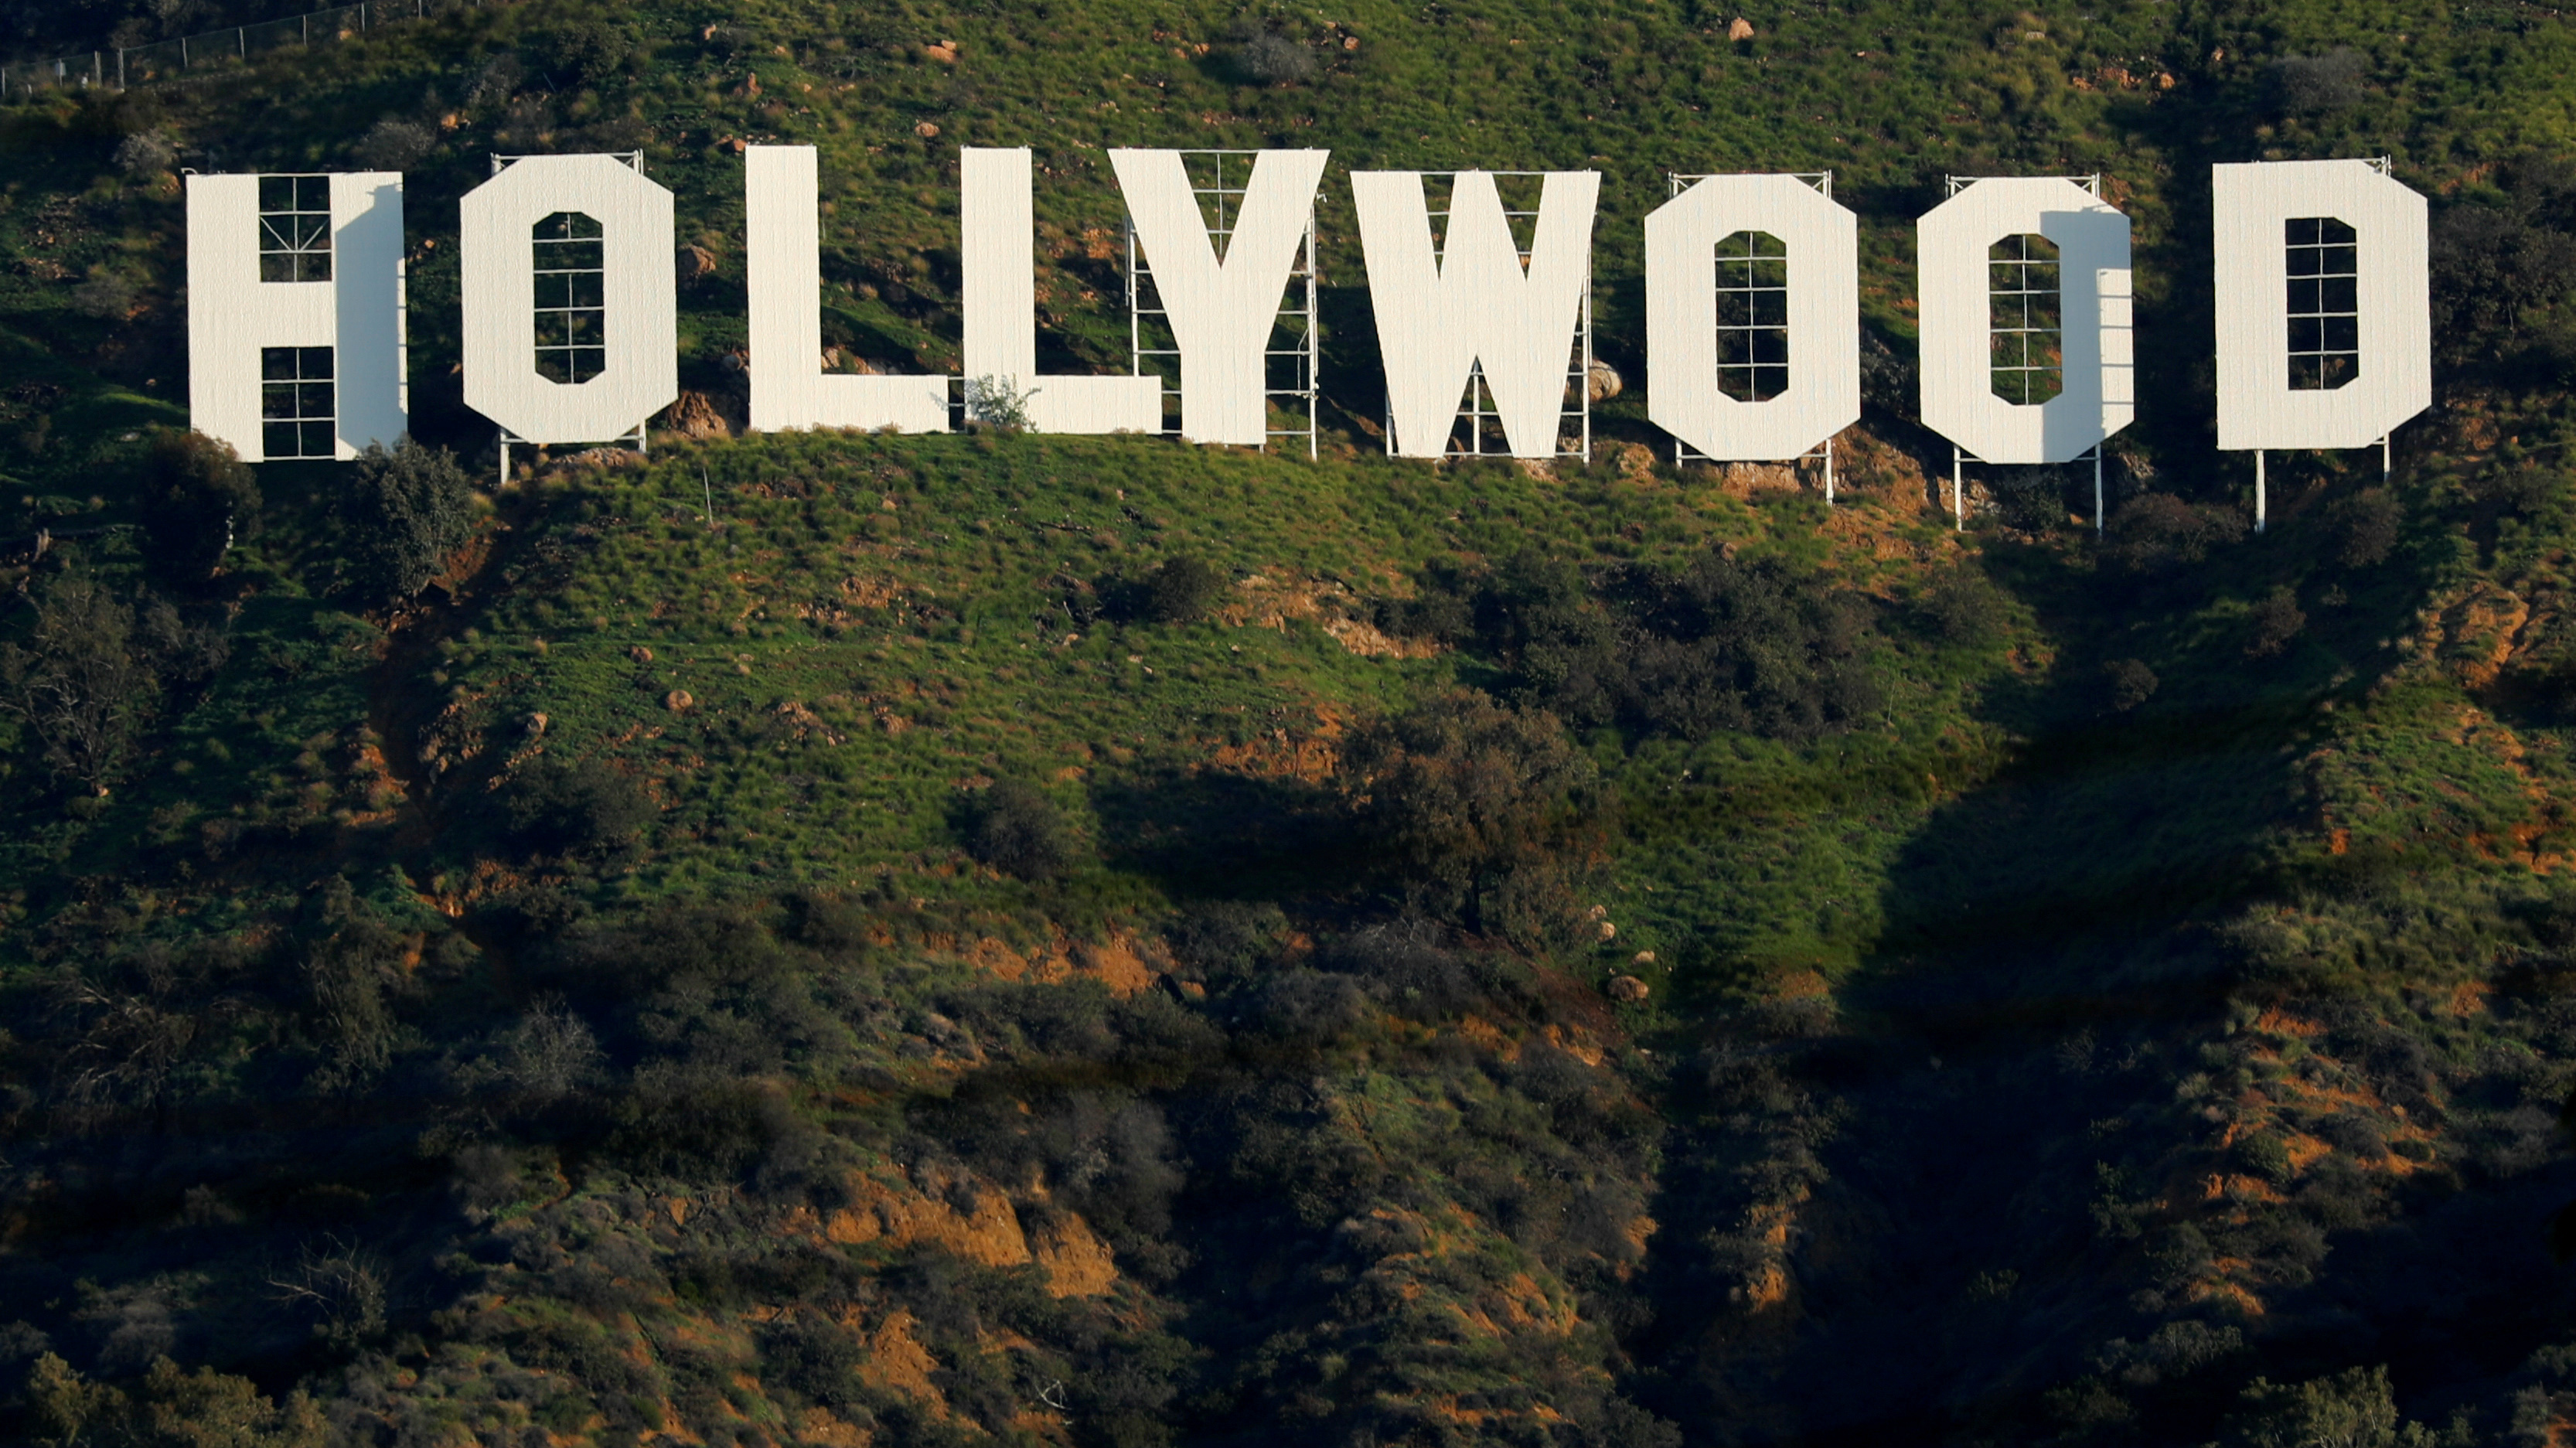 The Hollywood sign in California.